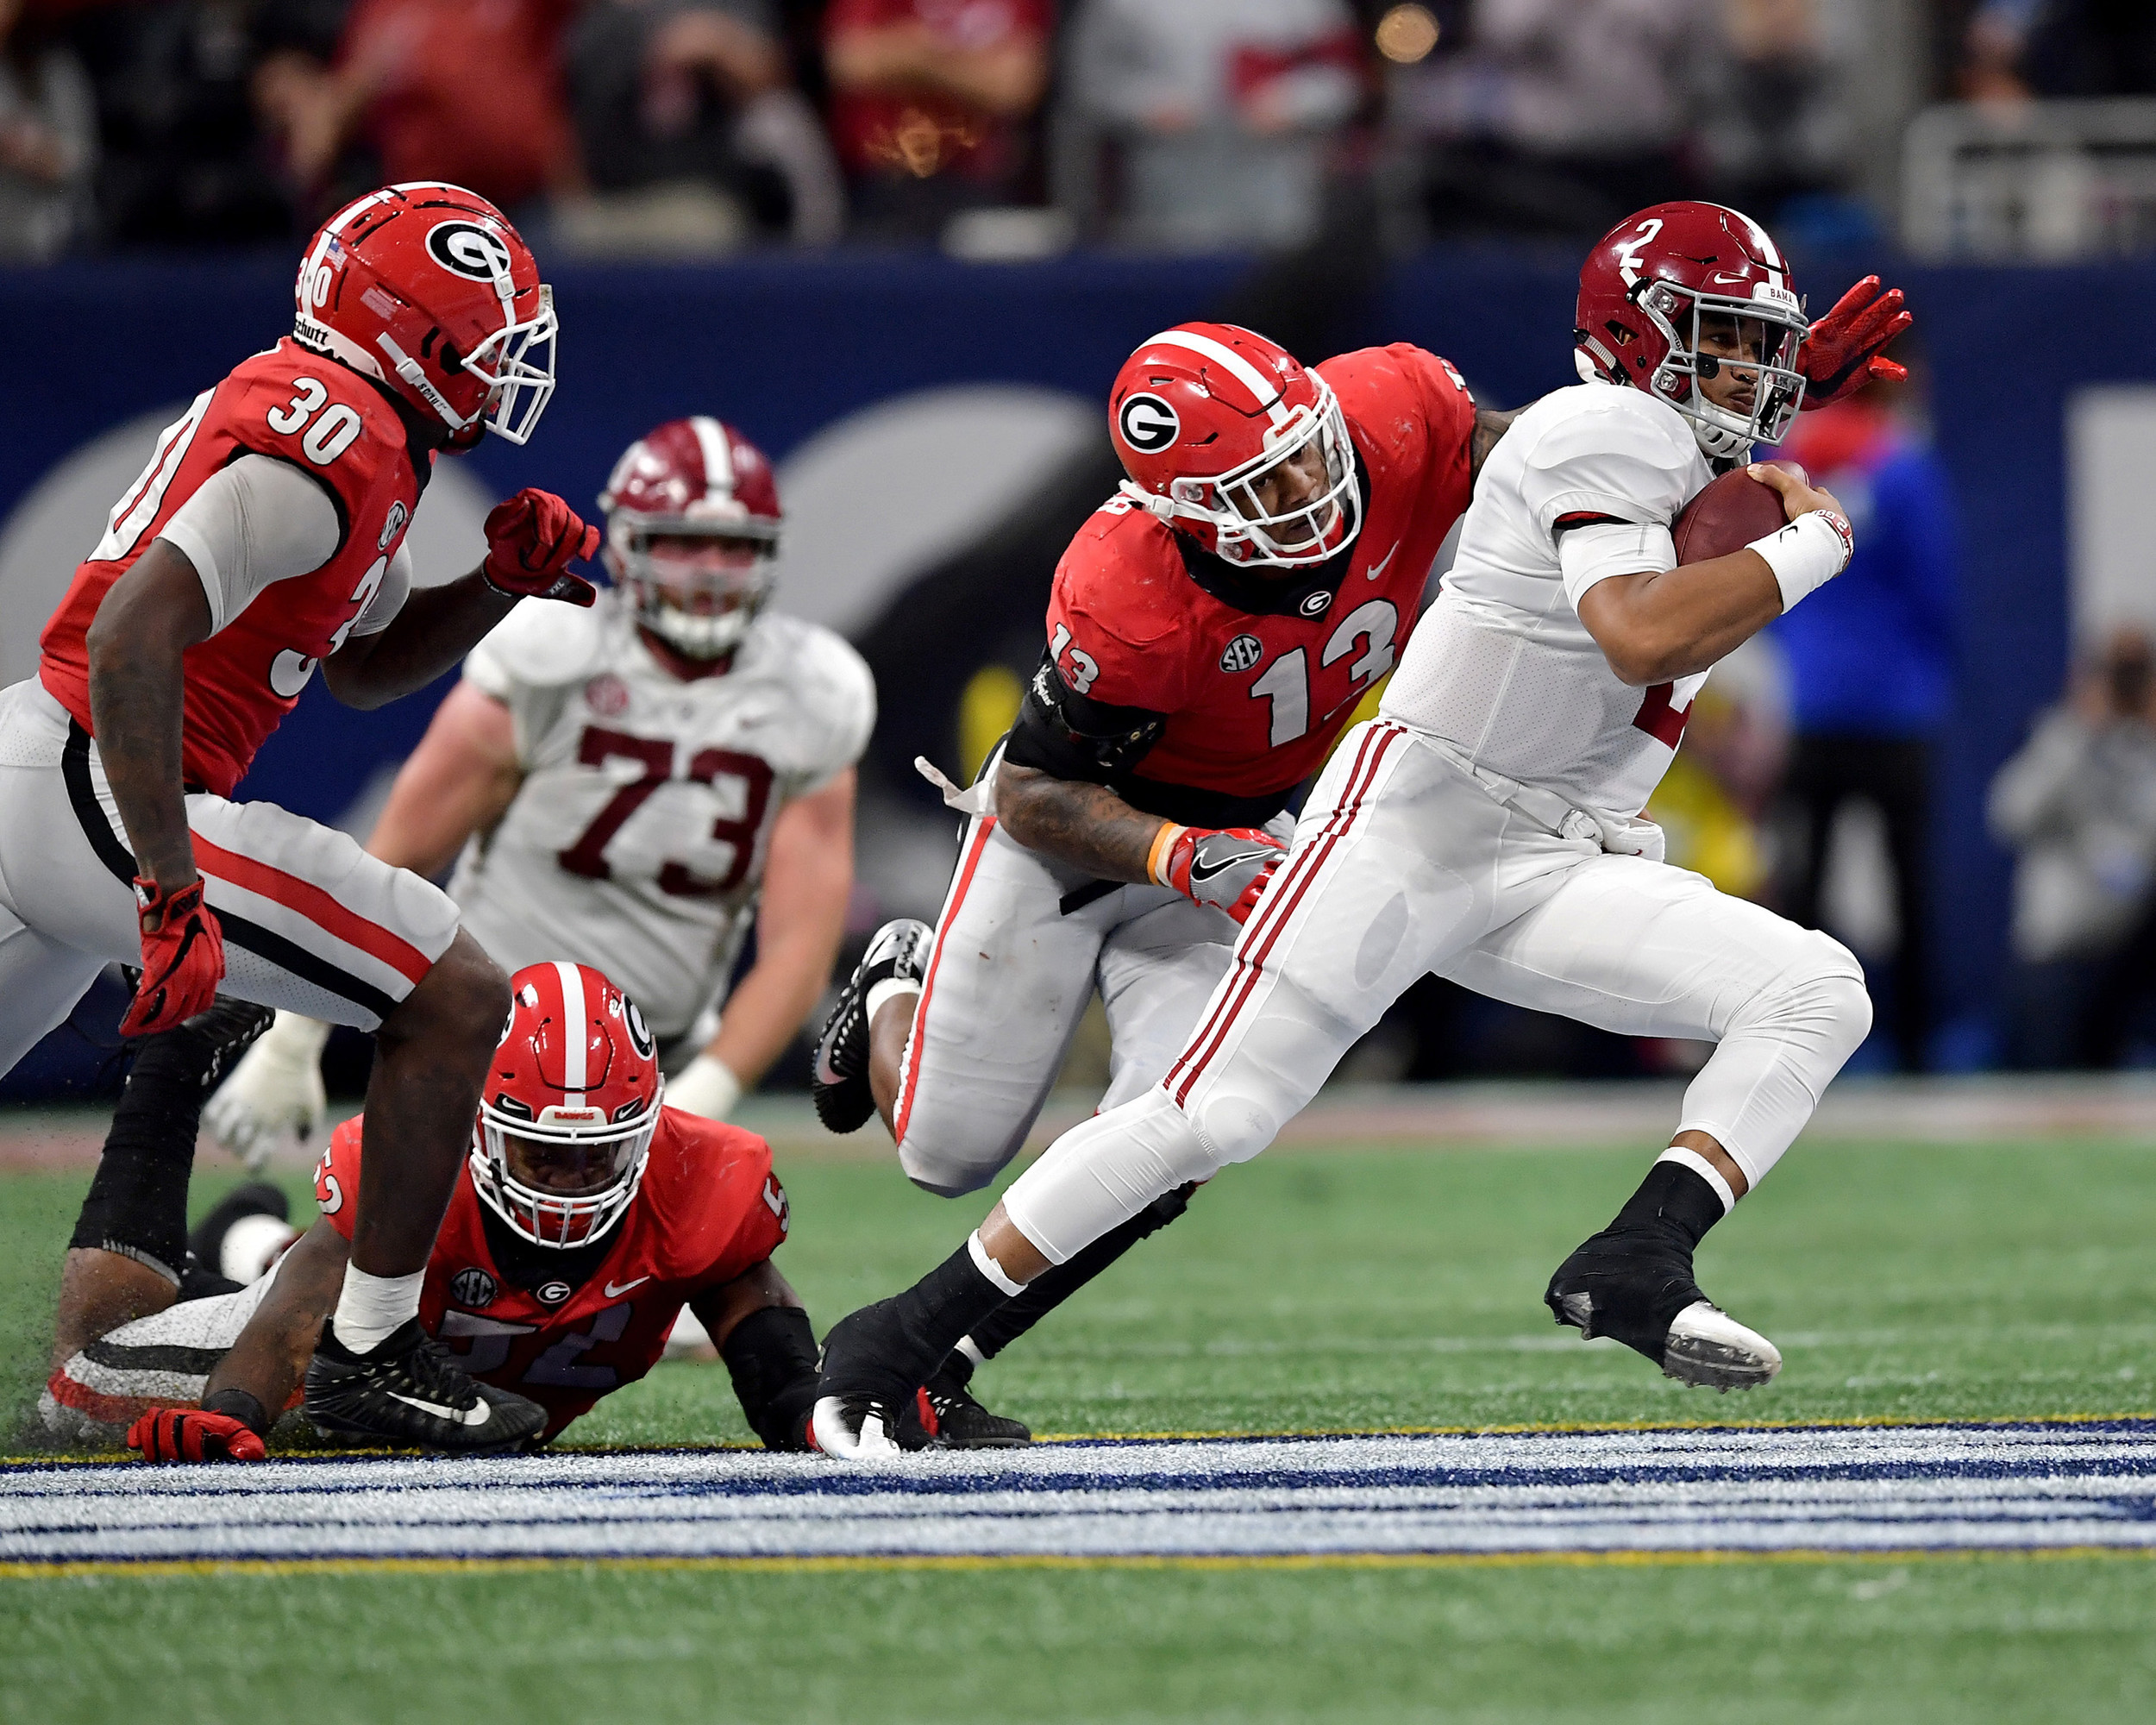 Alabama Crimson Tide quarterback Jalen Hurts (2) avoids a tackle by Georgia Bulldogs defensive end Jonathan Ledbetter (13) in the fourth quarter pf the 2018 SEC Championship football game at Mercedes-Benz Stadium in Atlanta, Ga., on Dec. 1, 2018. Alabama wins 35-28. (Photo by Lee Walls)